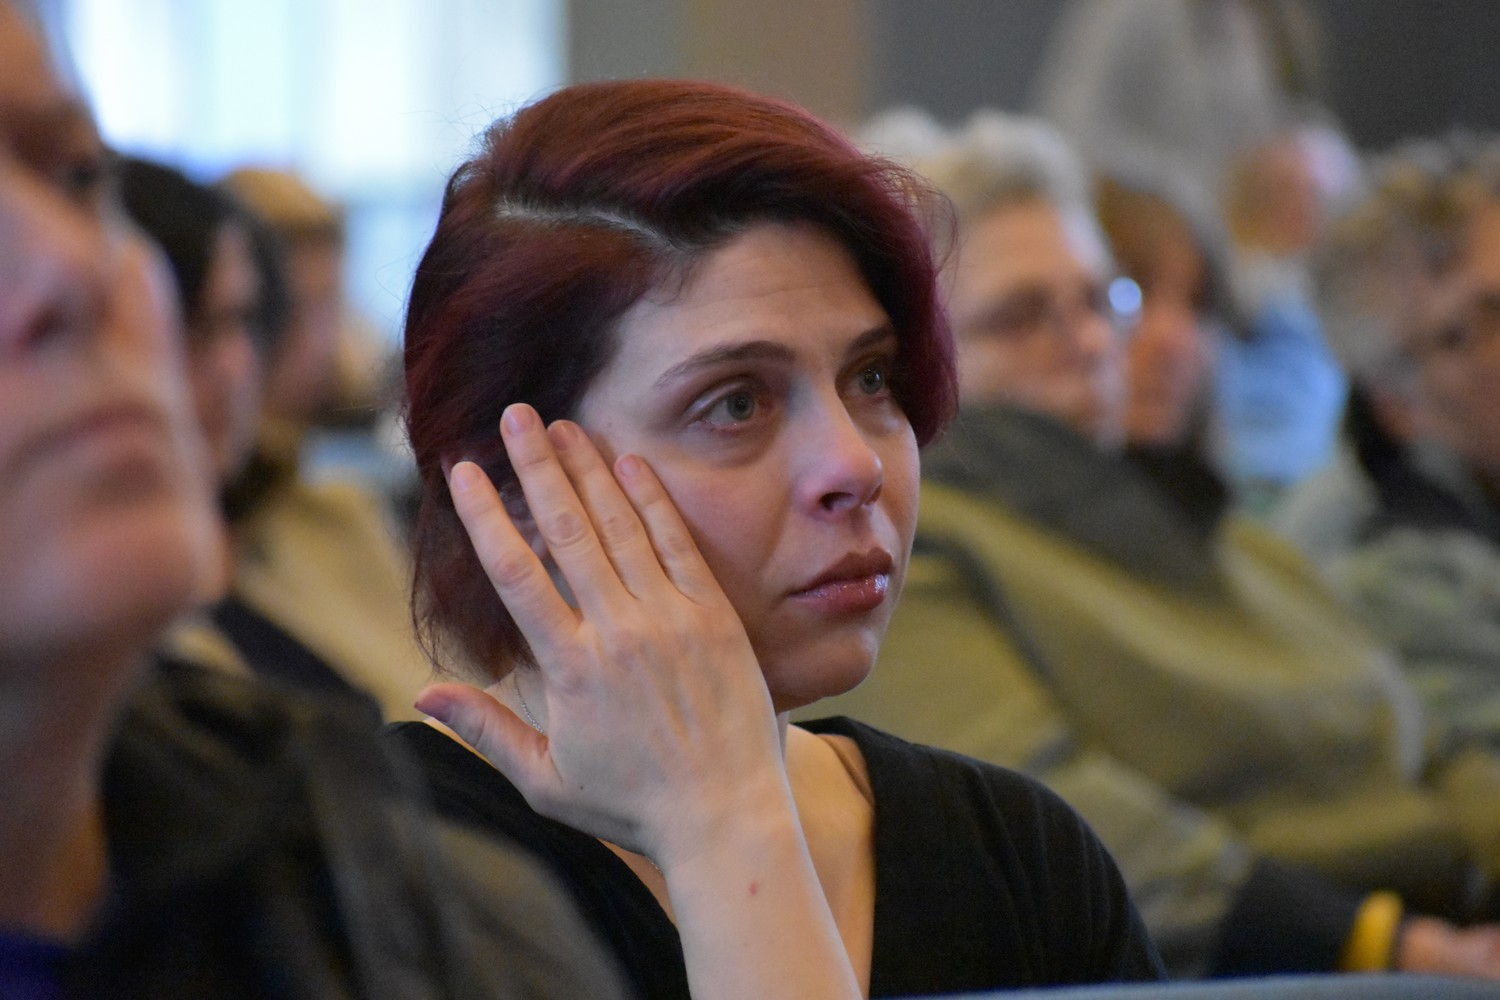 Rockville Centre resident Arielle Kane wiped away tears during a vigil on Feb. 16 at Central Synagogue-Beth Emeth, which remembered the victims of the school shooting in Parkland, Fla.